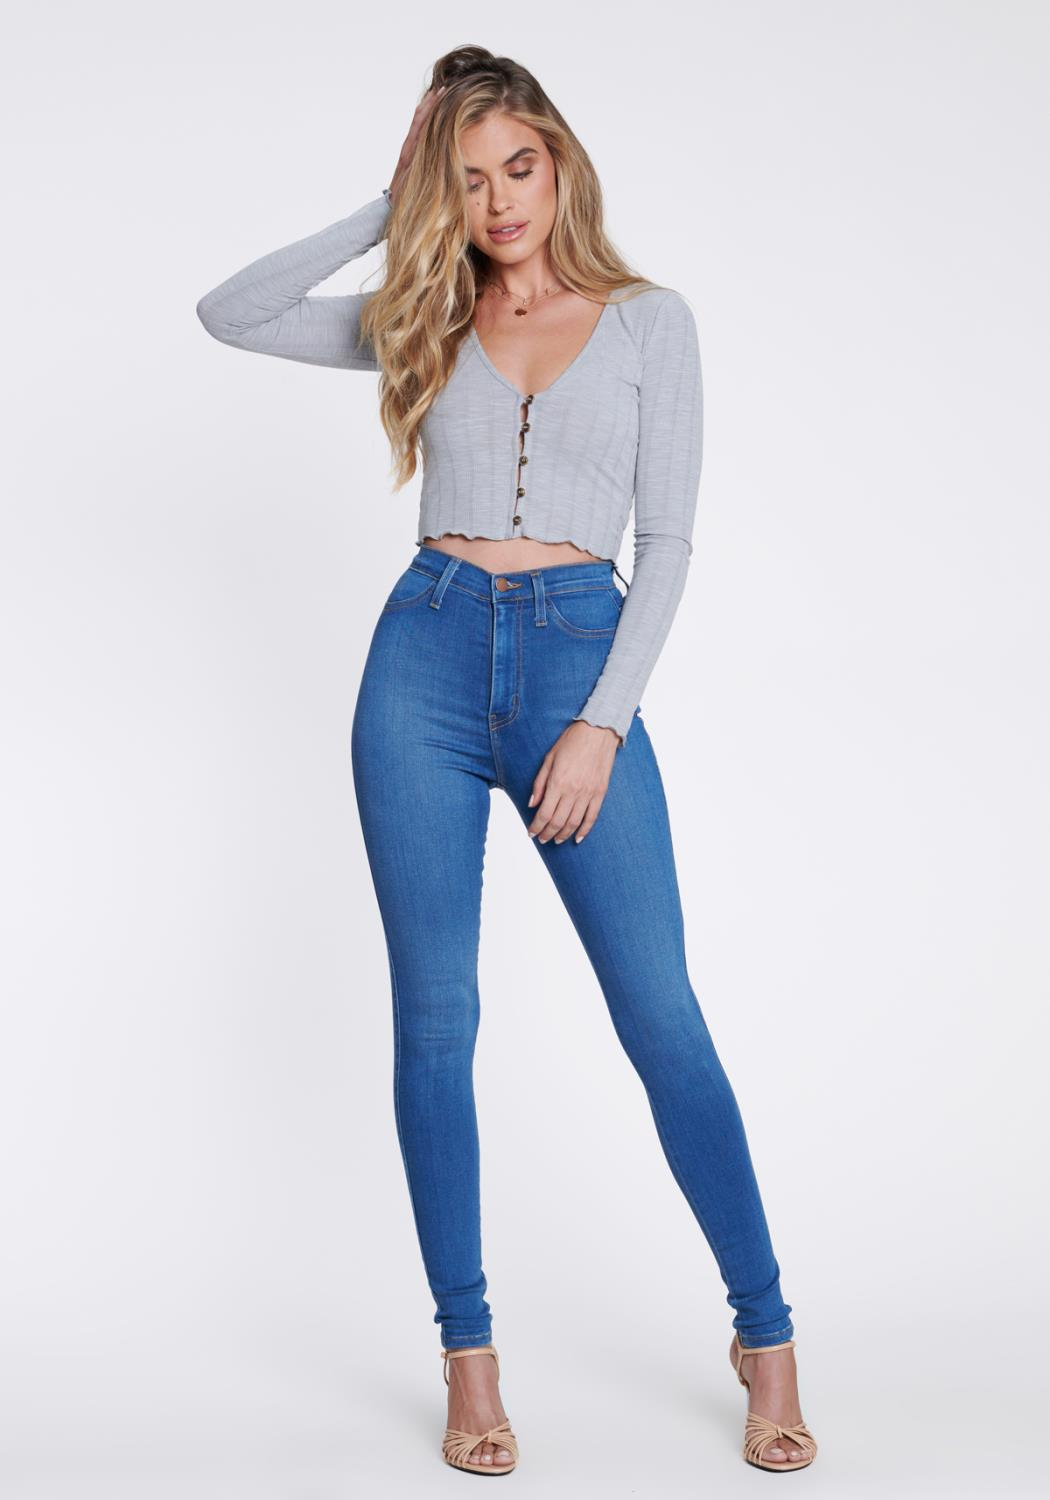 All Day Everyday Skinny Jeans